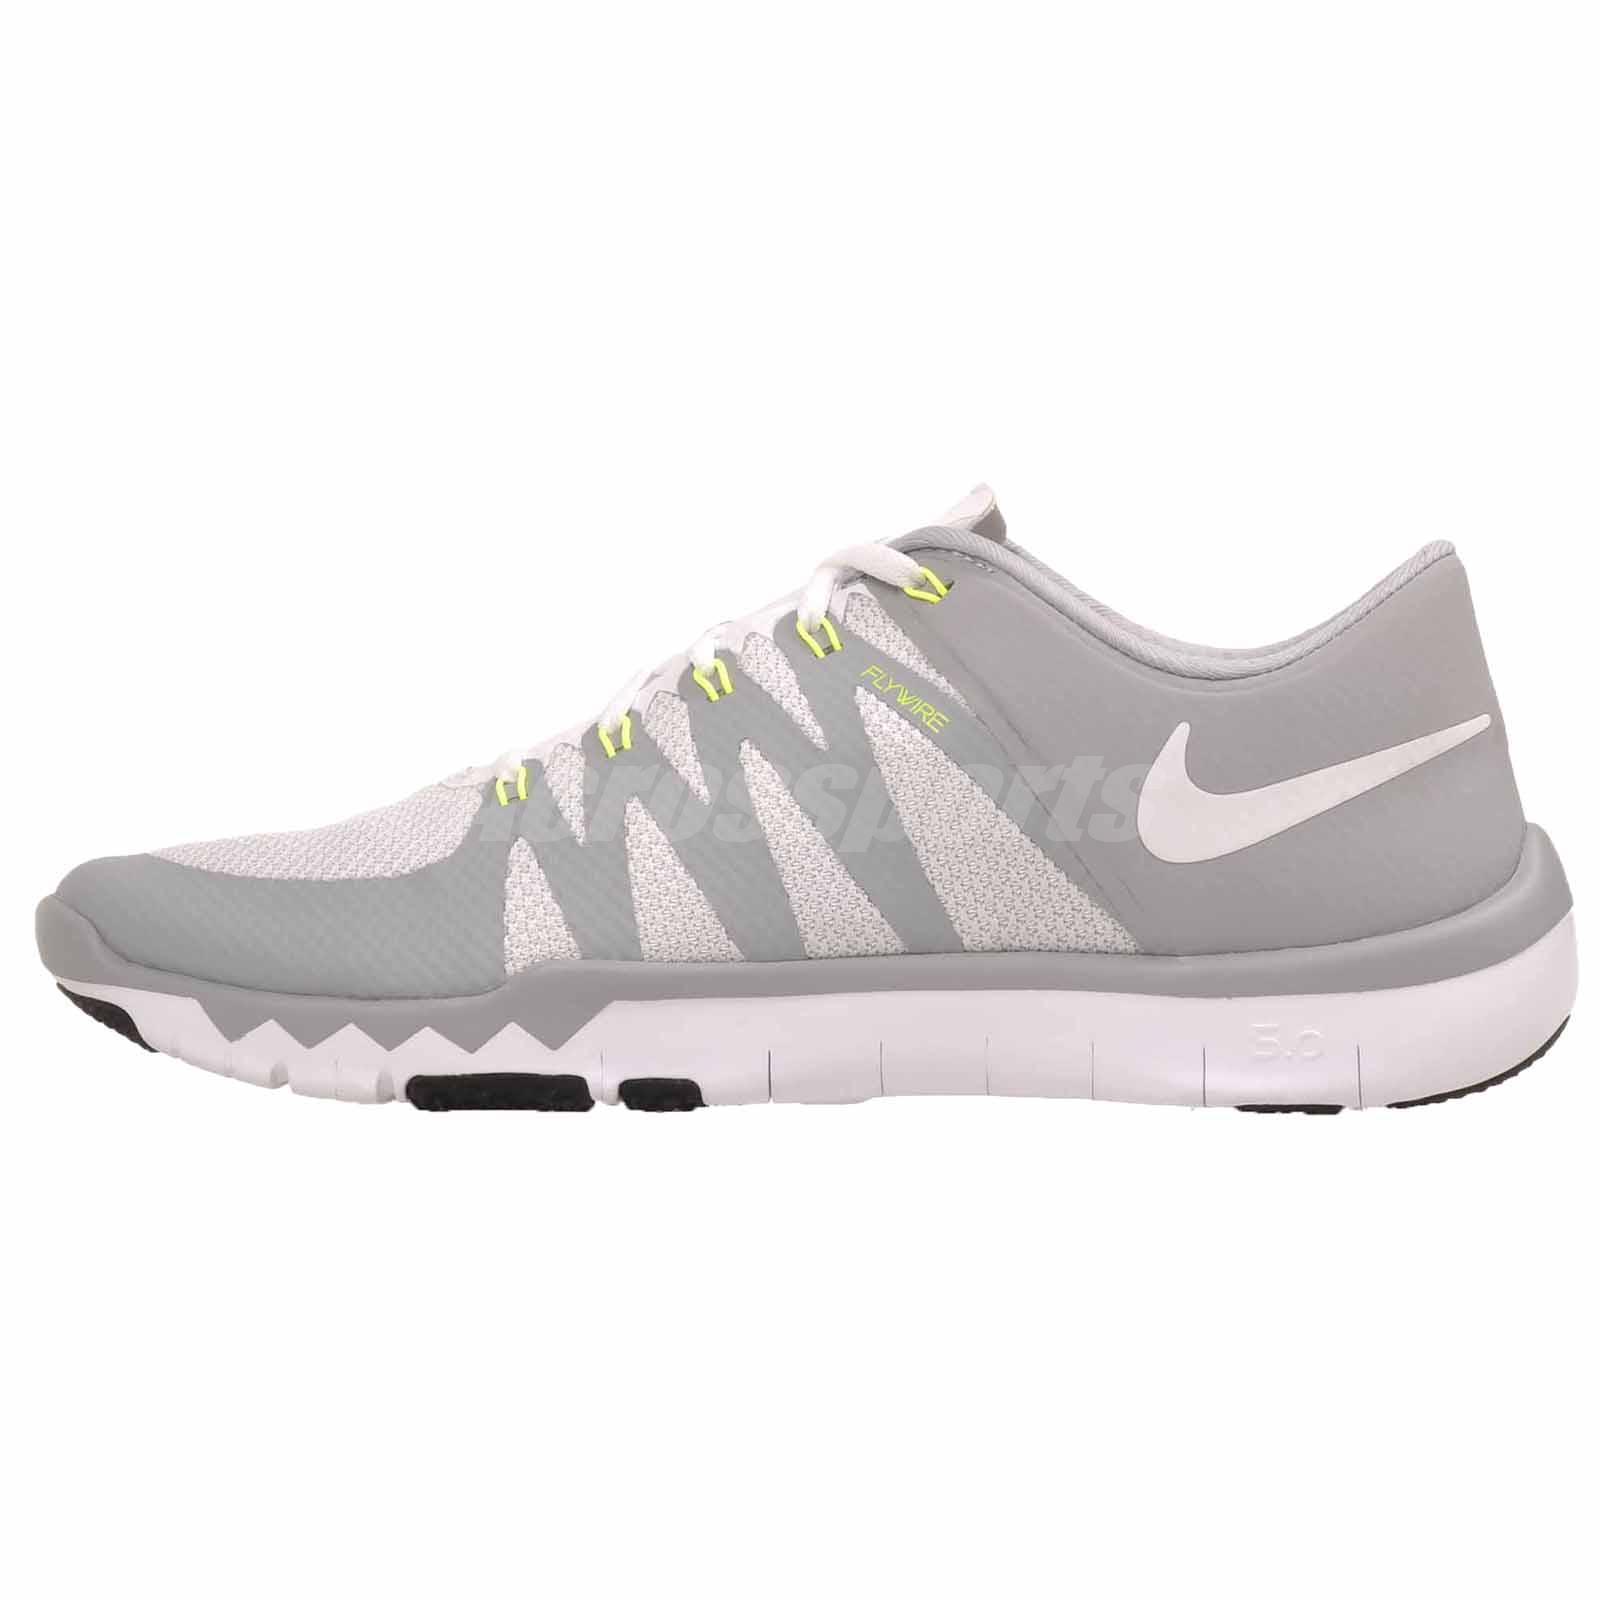 hot sale online 370ee 4f875 ... promo code for nike free trainer 5.0 v6 cross training mens shoes white  grey 719922 100